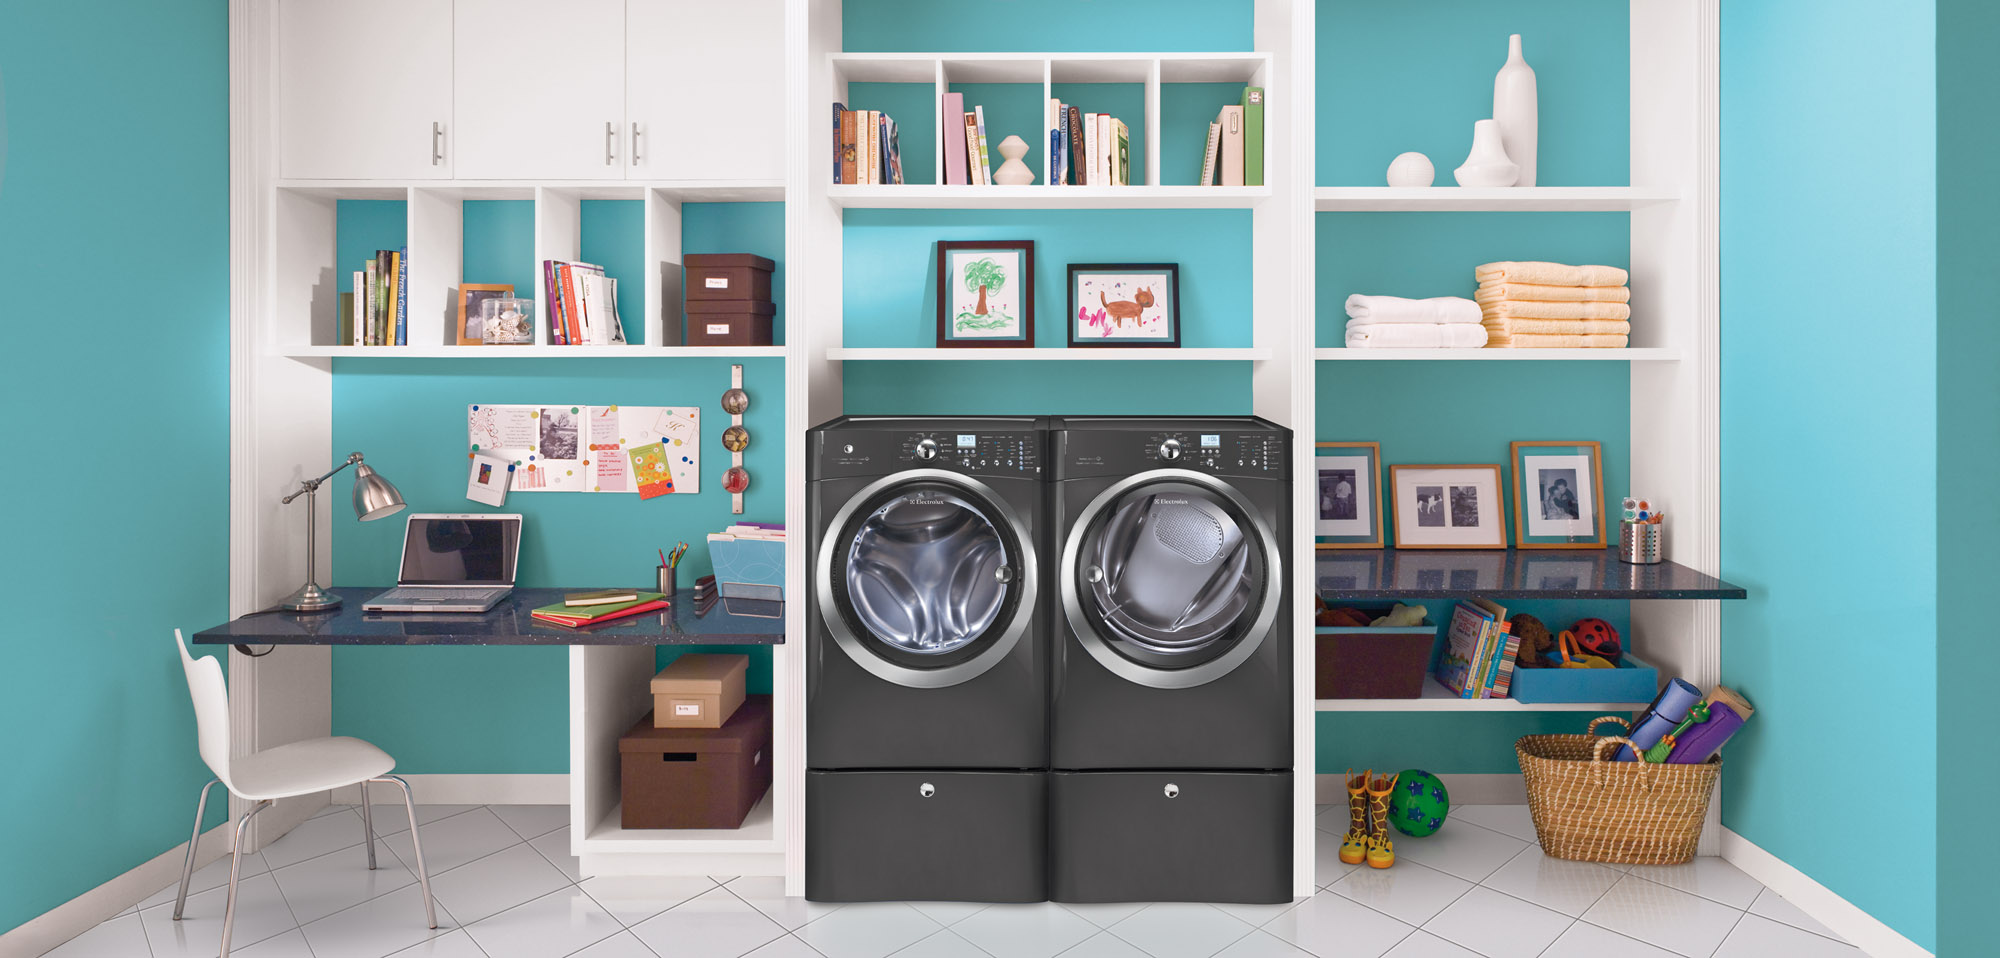 Shop for Electrolux Appliances - New Jersey & New York